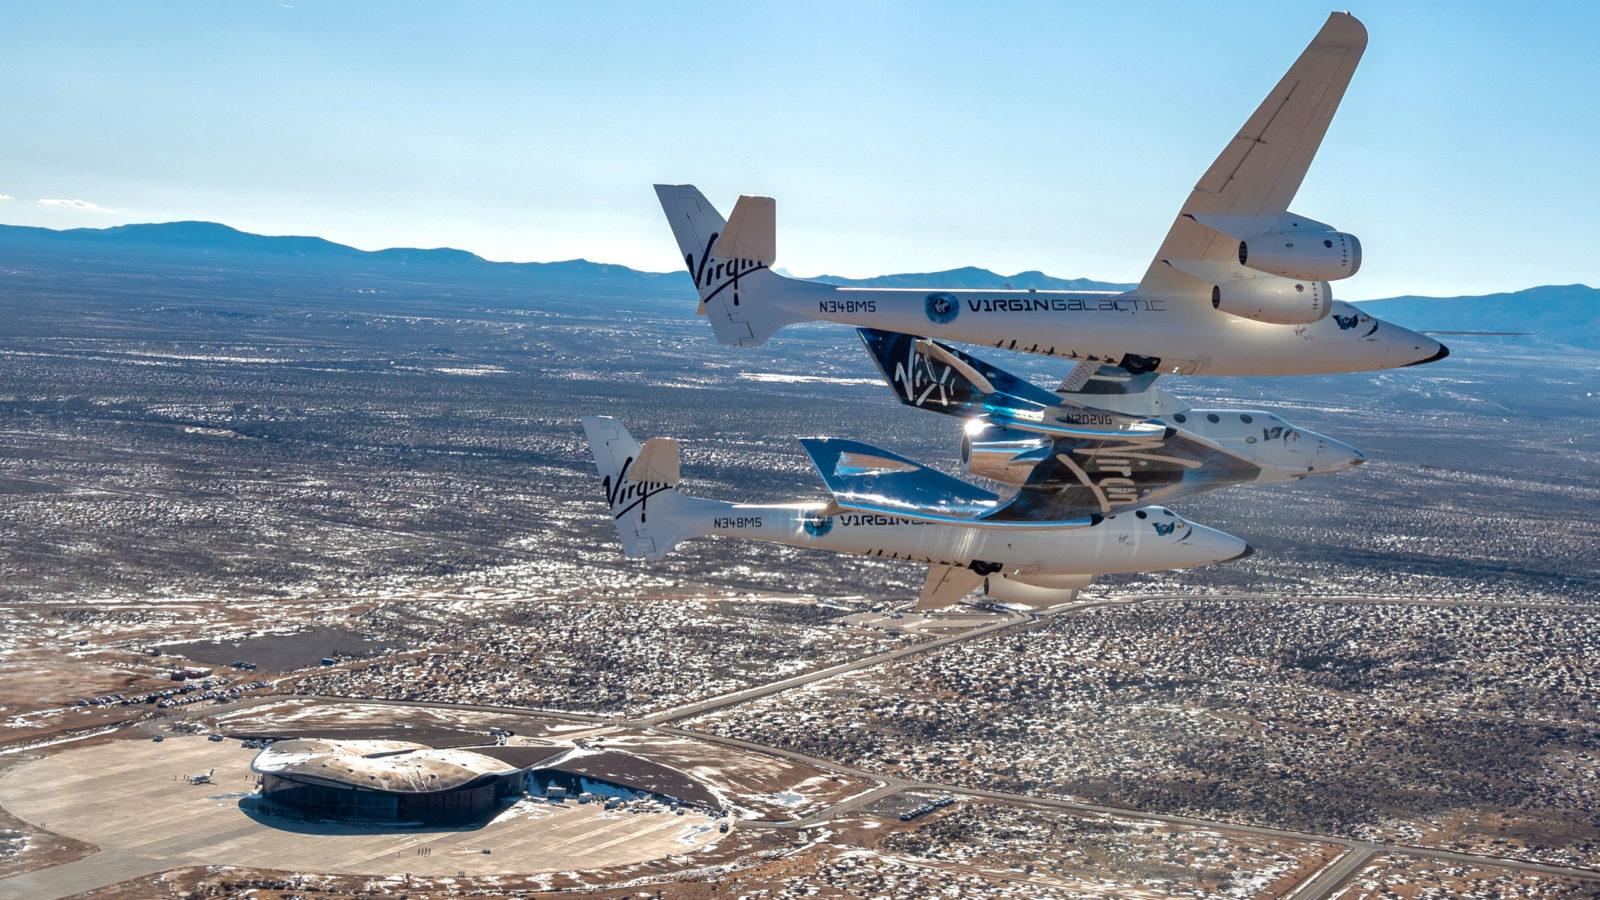 Virgin Galactic relocates SpaceShipTwo 'VSS Unity' to its spaceport for preparations ahead of commercial flights